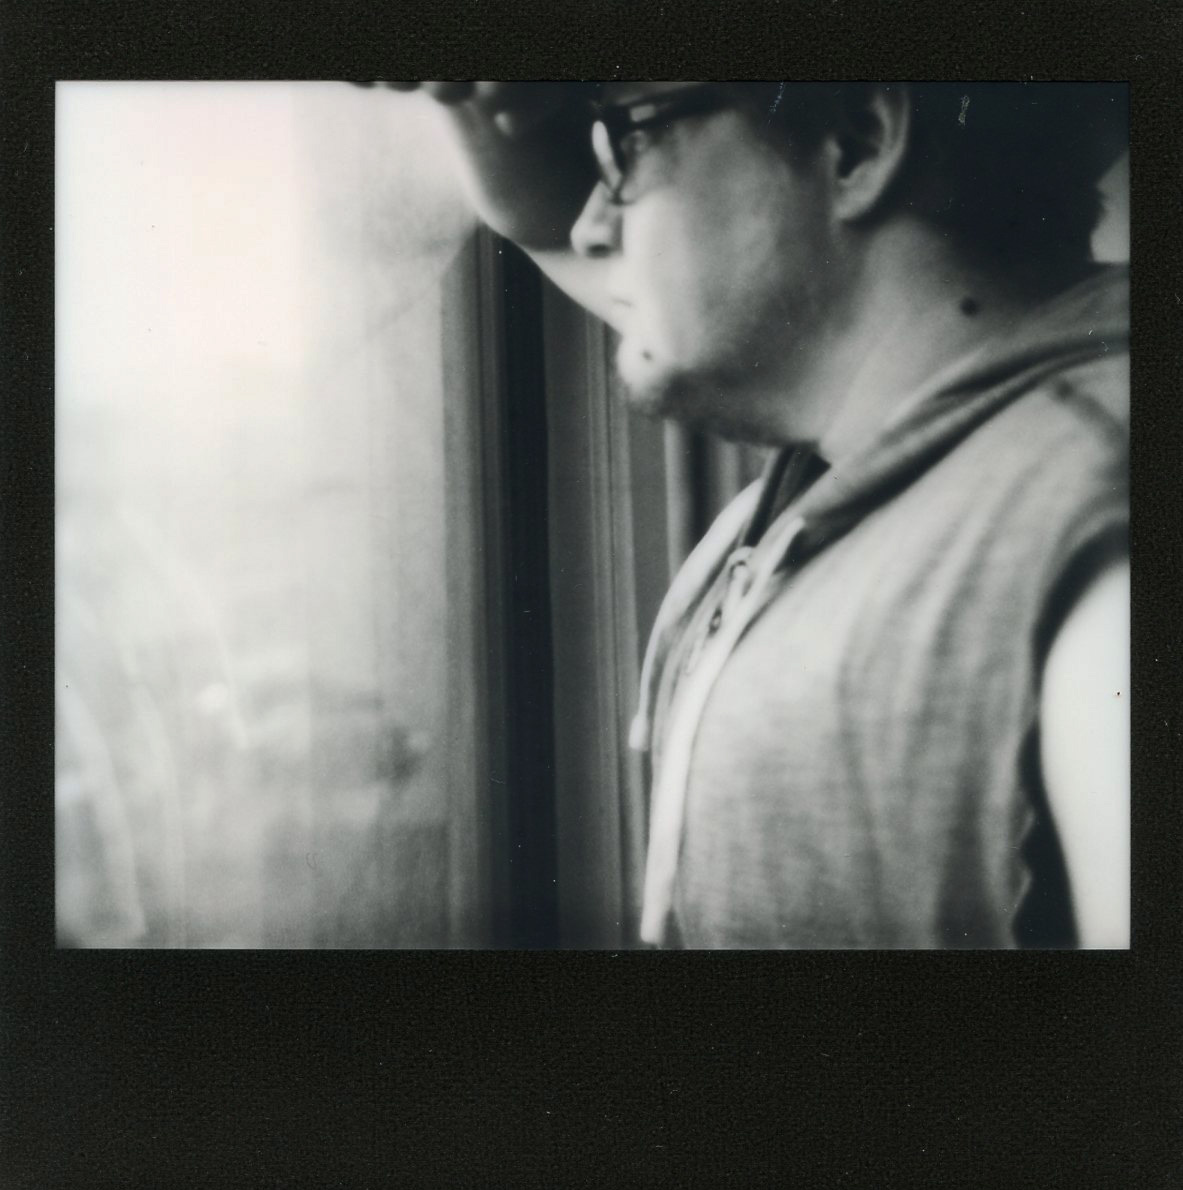 In this black-framed instant photo, a white man visible in profile from chest to forehead leans his arm against the pane of a large window. He wears glasses with thick rectangular frames and a lightweight gray hoodie with the sleeves torn off. He has a short, light-colored beard. The picture has a pensive, dreamy feel, and by a trick of the light it appears that the windowpane is bowing slightly toward the man where his arm rests against the glass. (The image is a self-portrait).